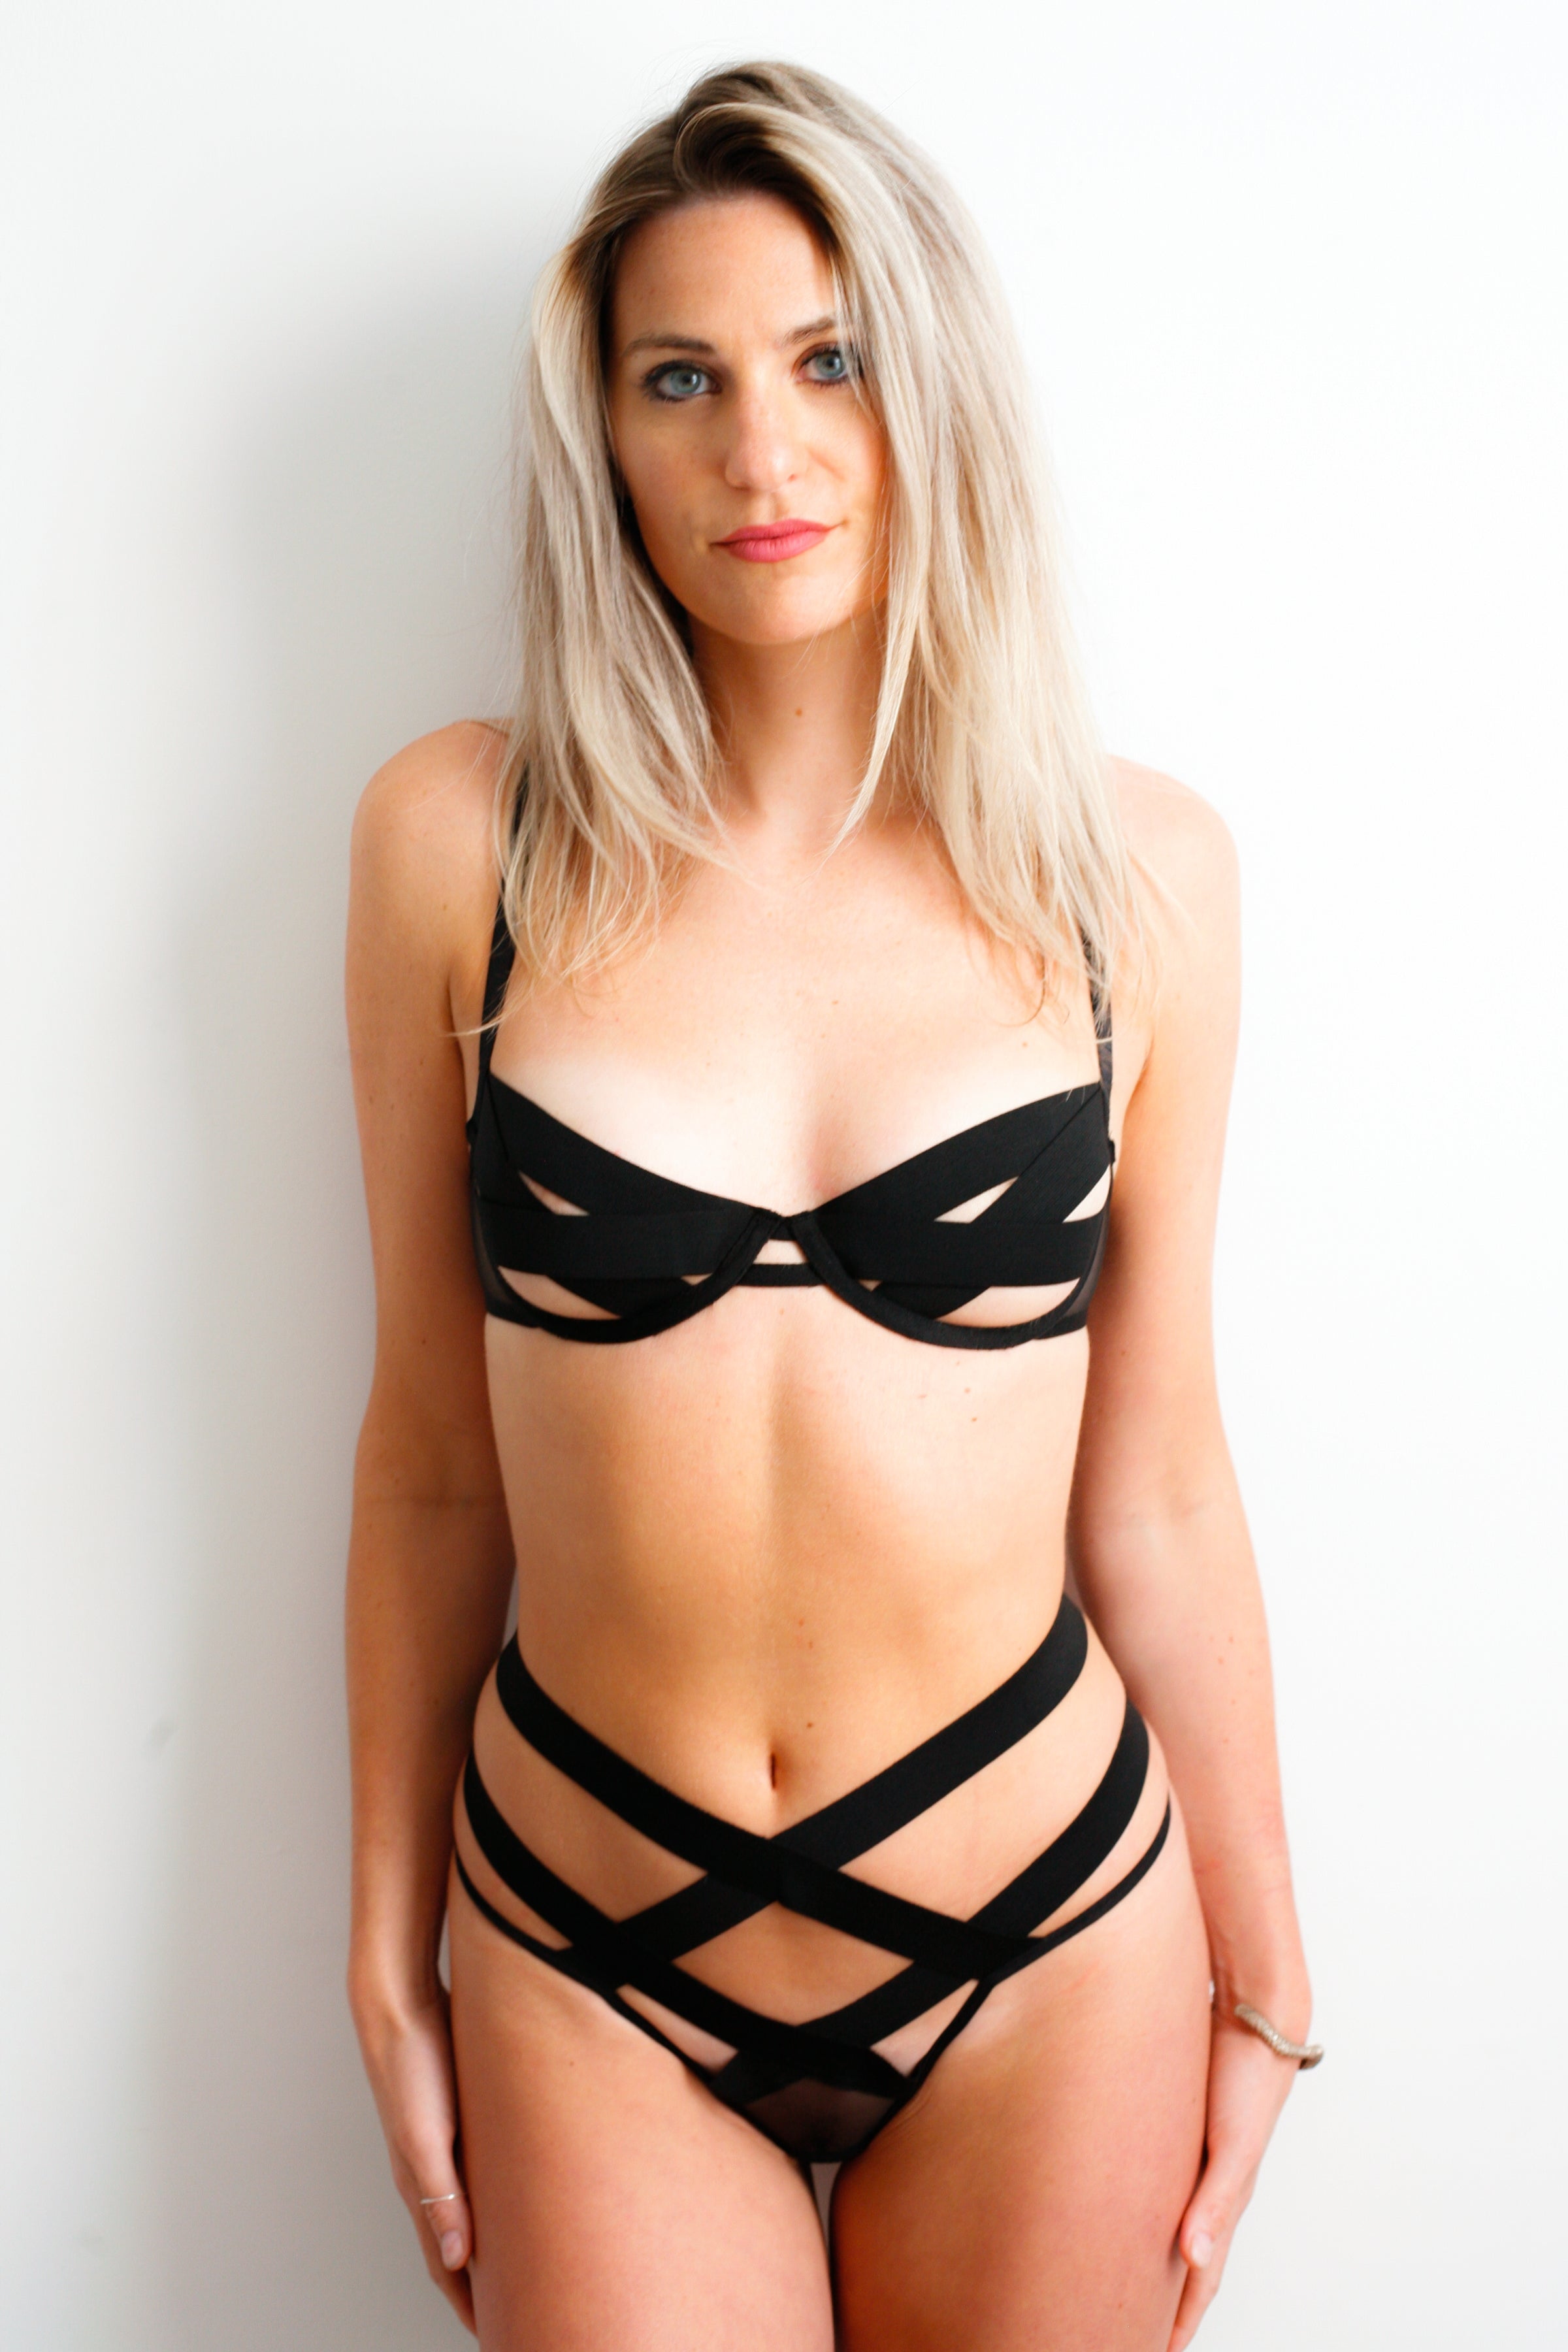 Lingerie, self-love and female empowerment – Alice Kass